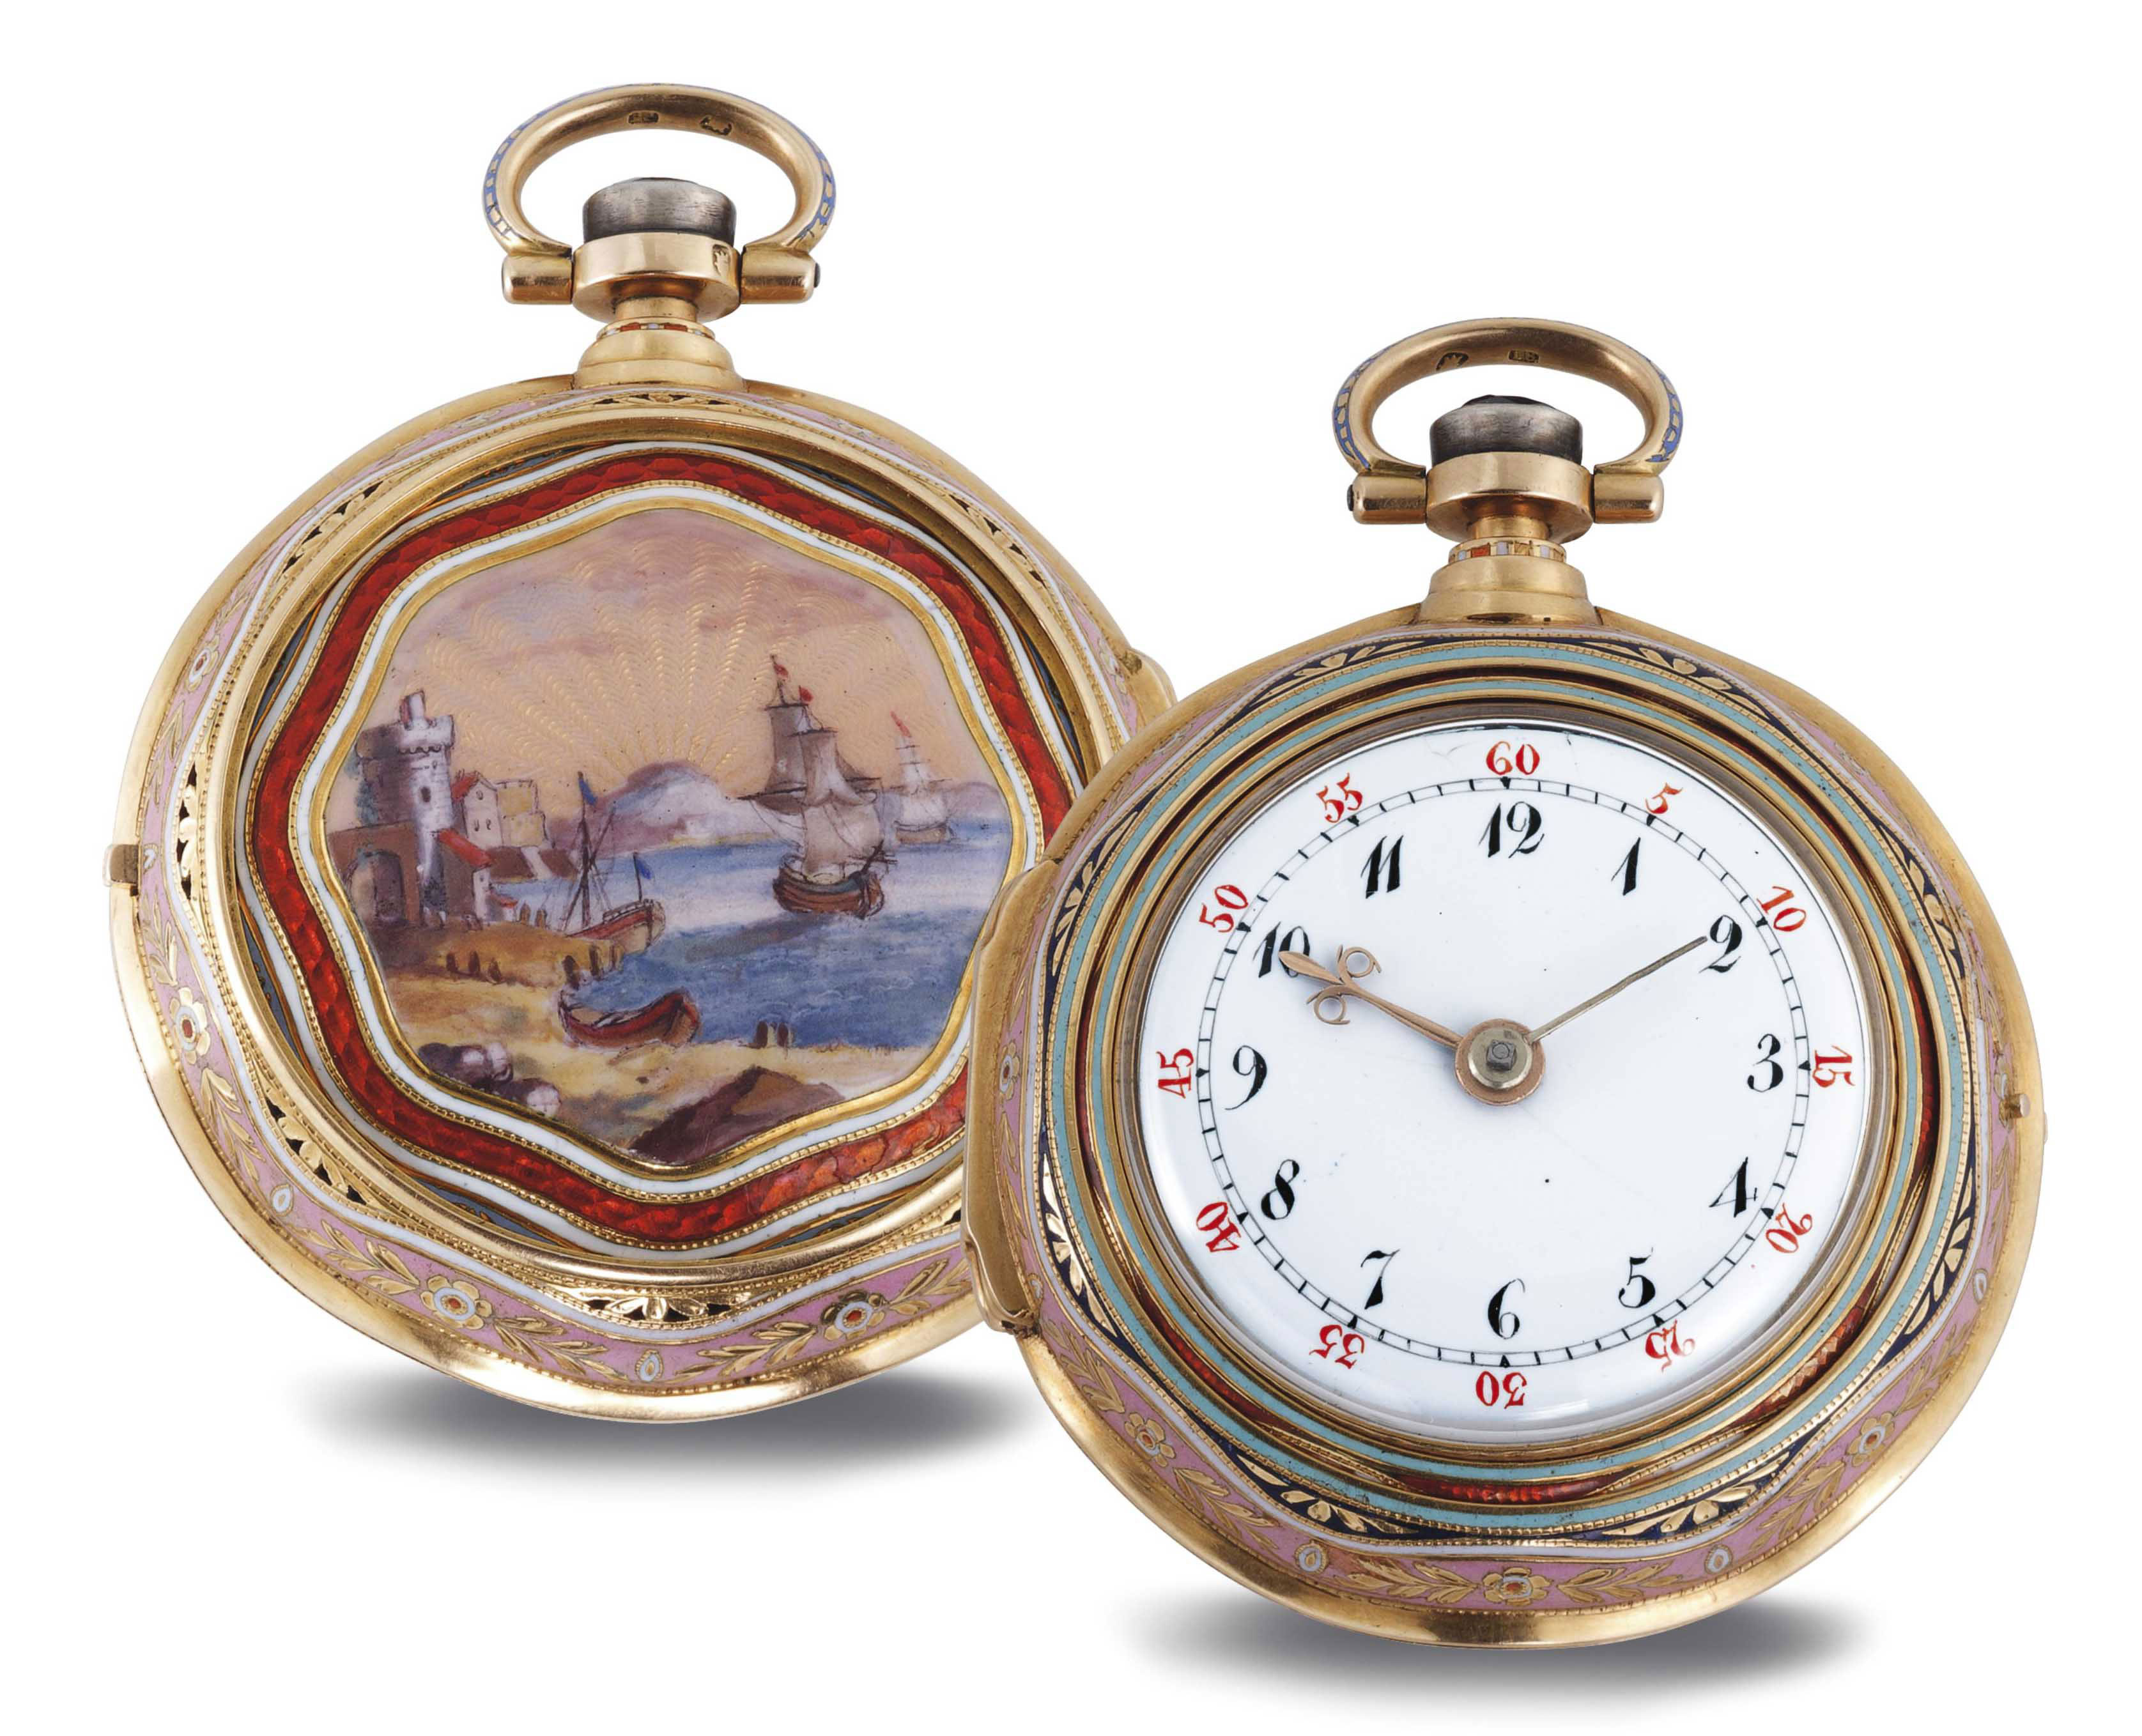 GEORGE PRIOR, A FINE 18K GOLD AND ENAMEL OPENFACE QUARTER REPEATING TRIPLE CASE VERGE WATCH